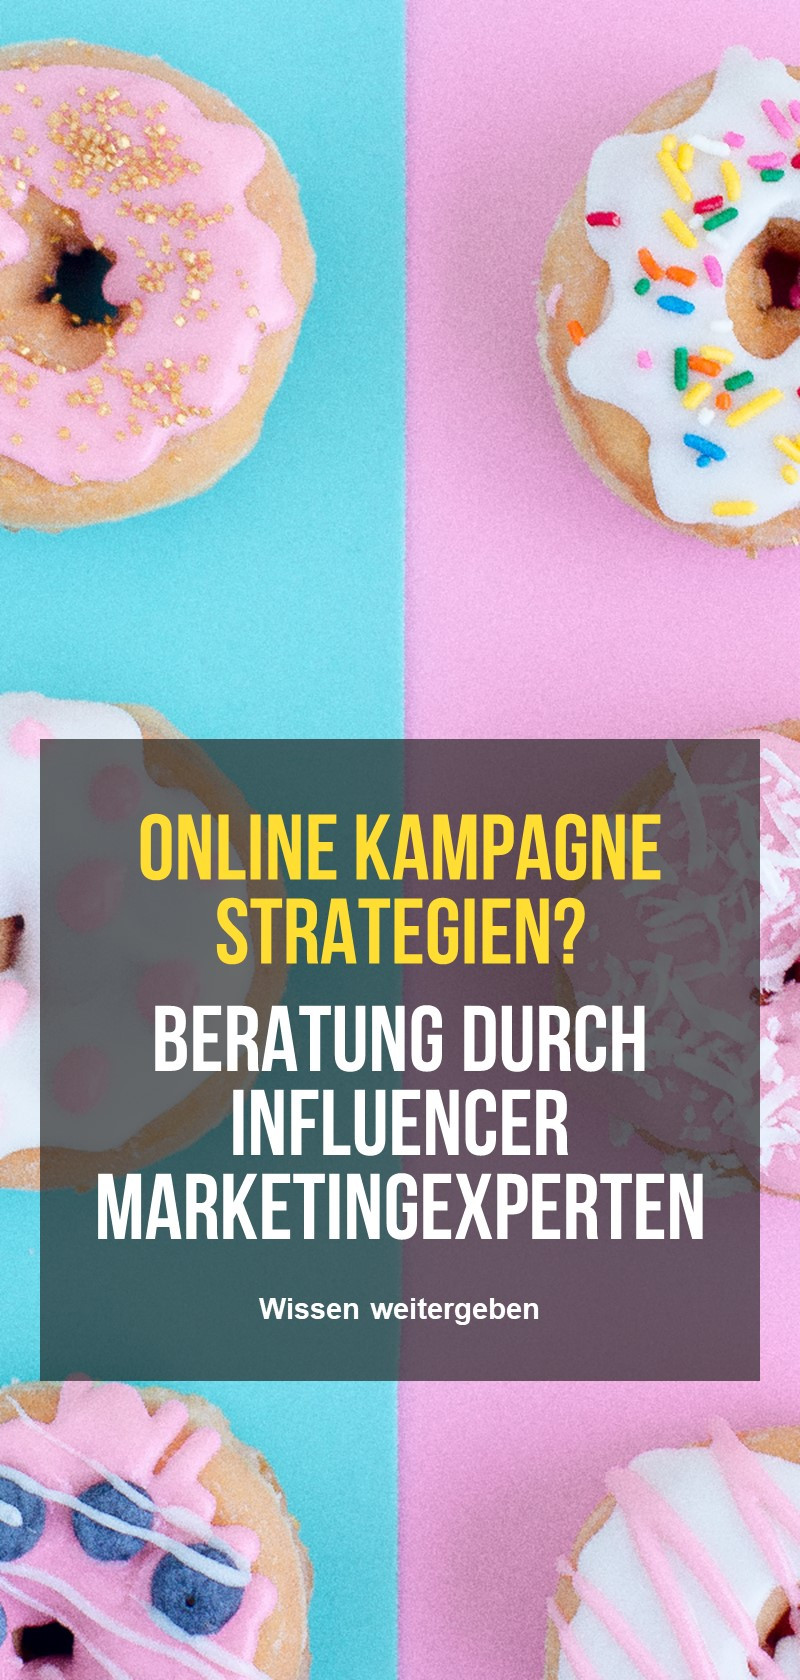 Influencer Marketing Beratung